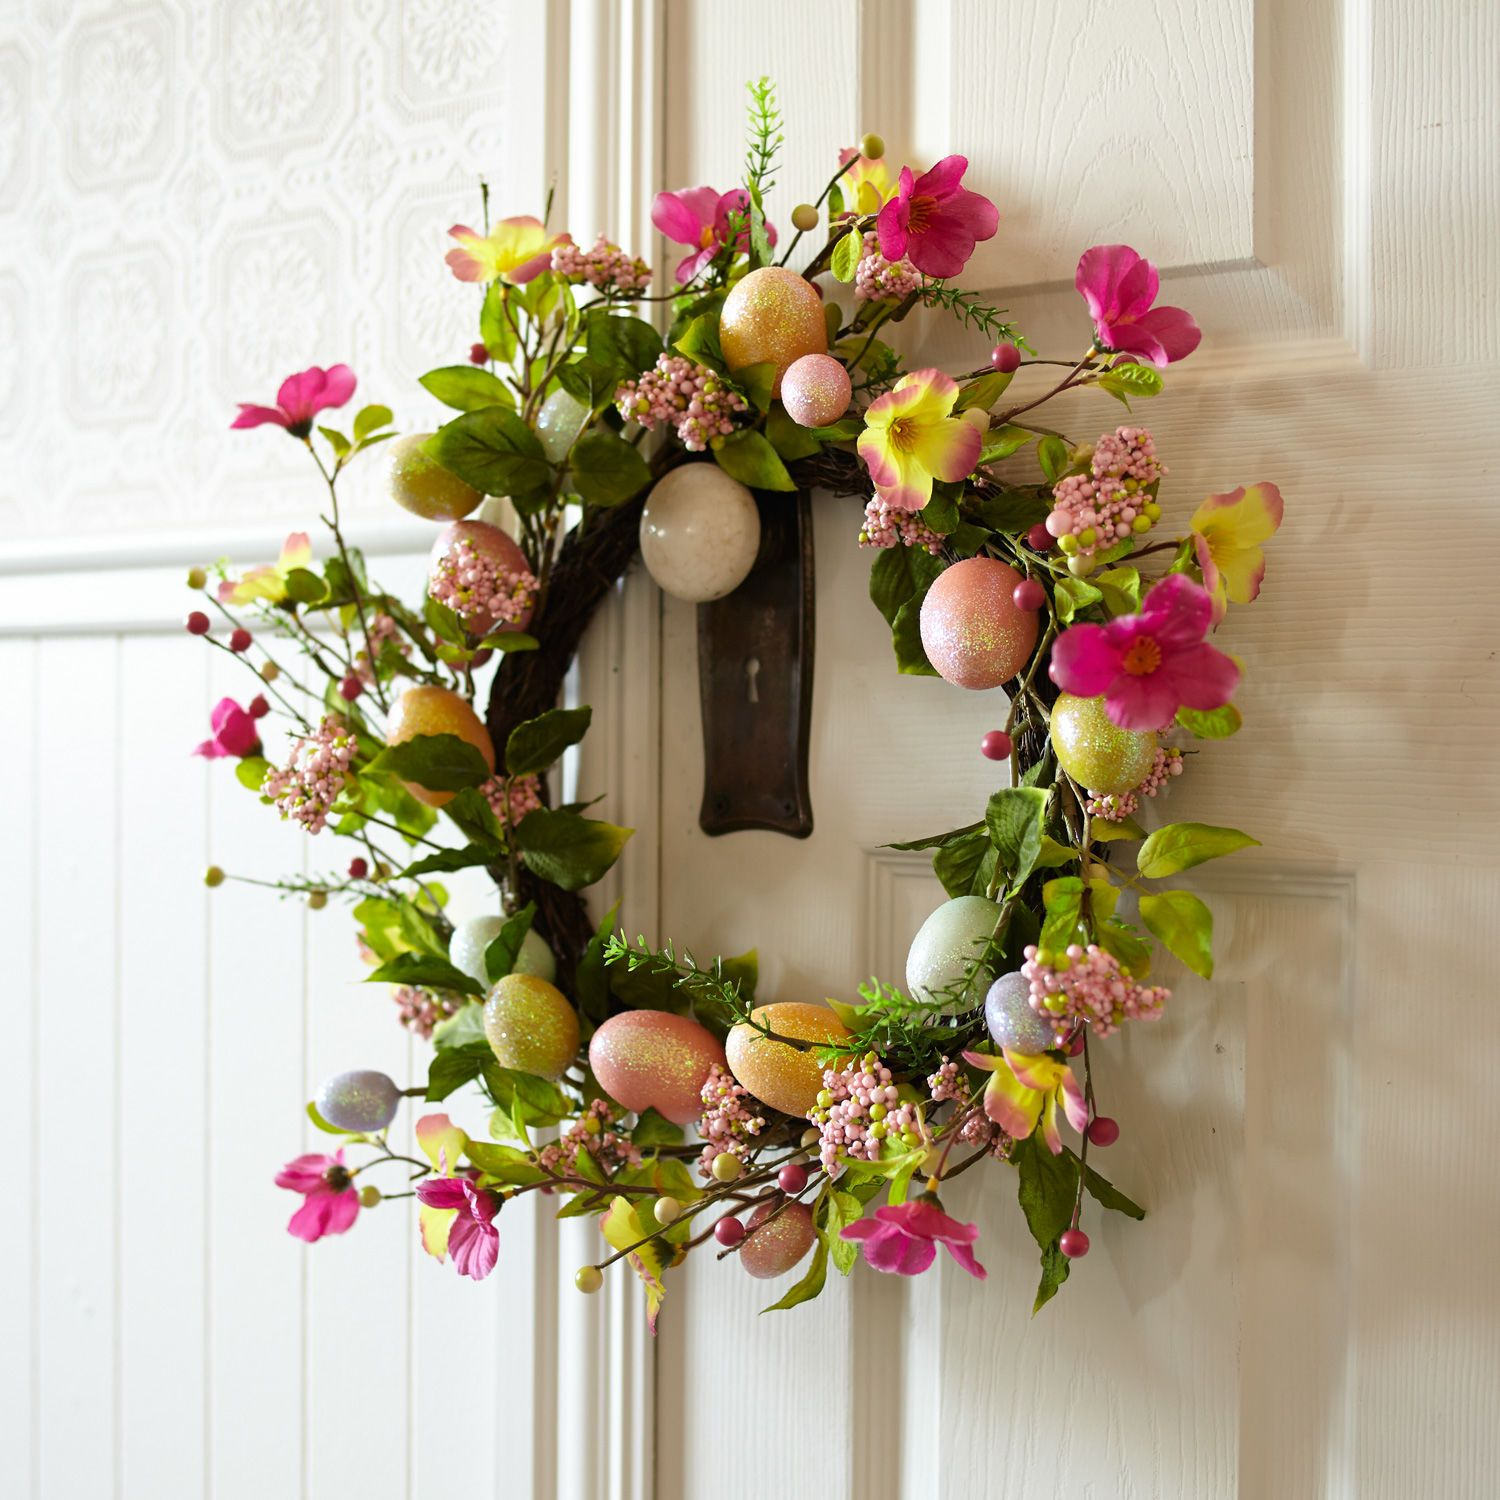 . Floral   Glitter Egg Wreath   Pier 1 Imports   Eastwood Towne Center